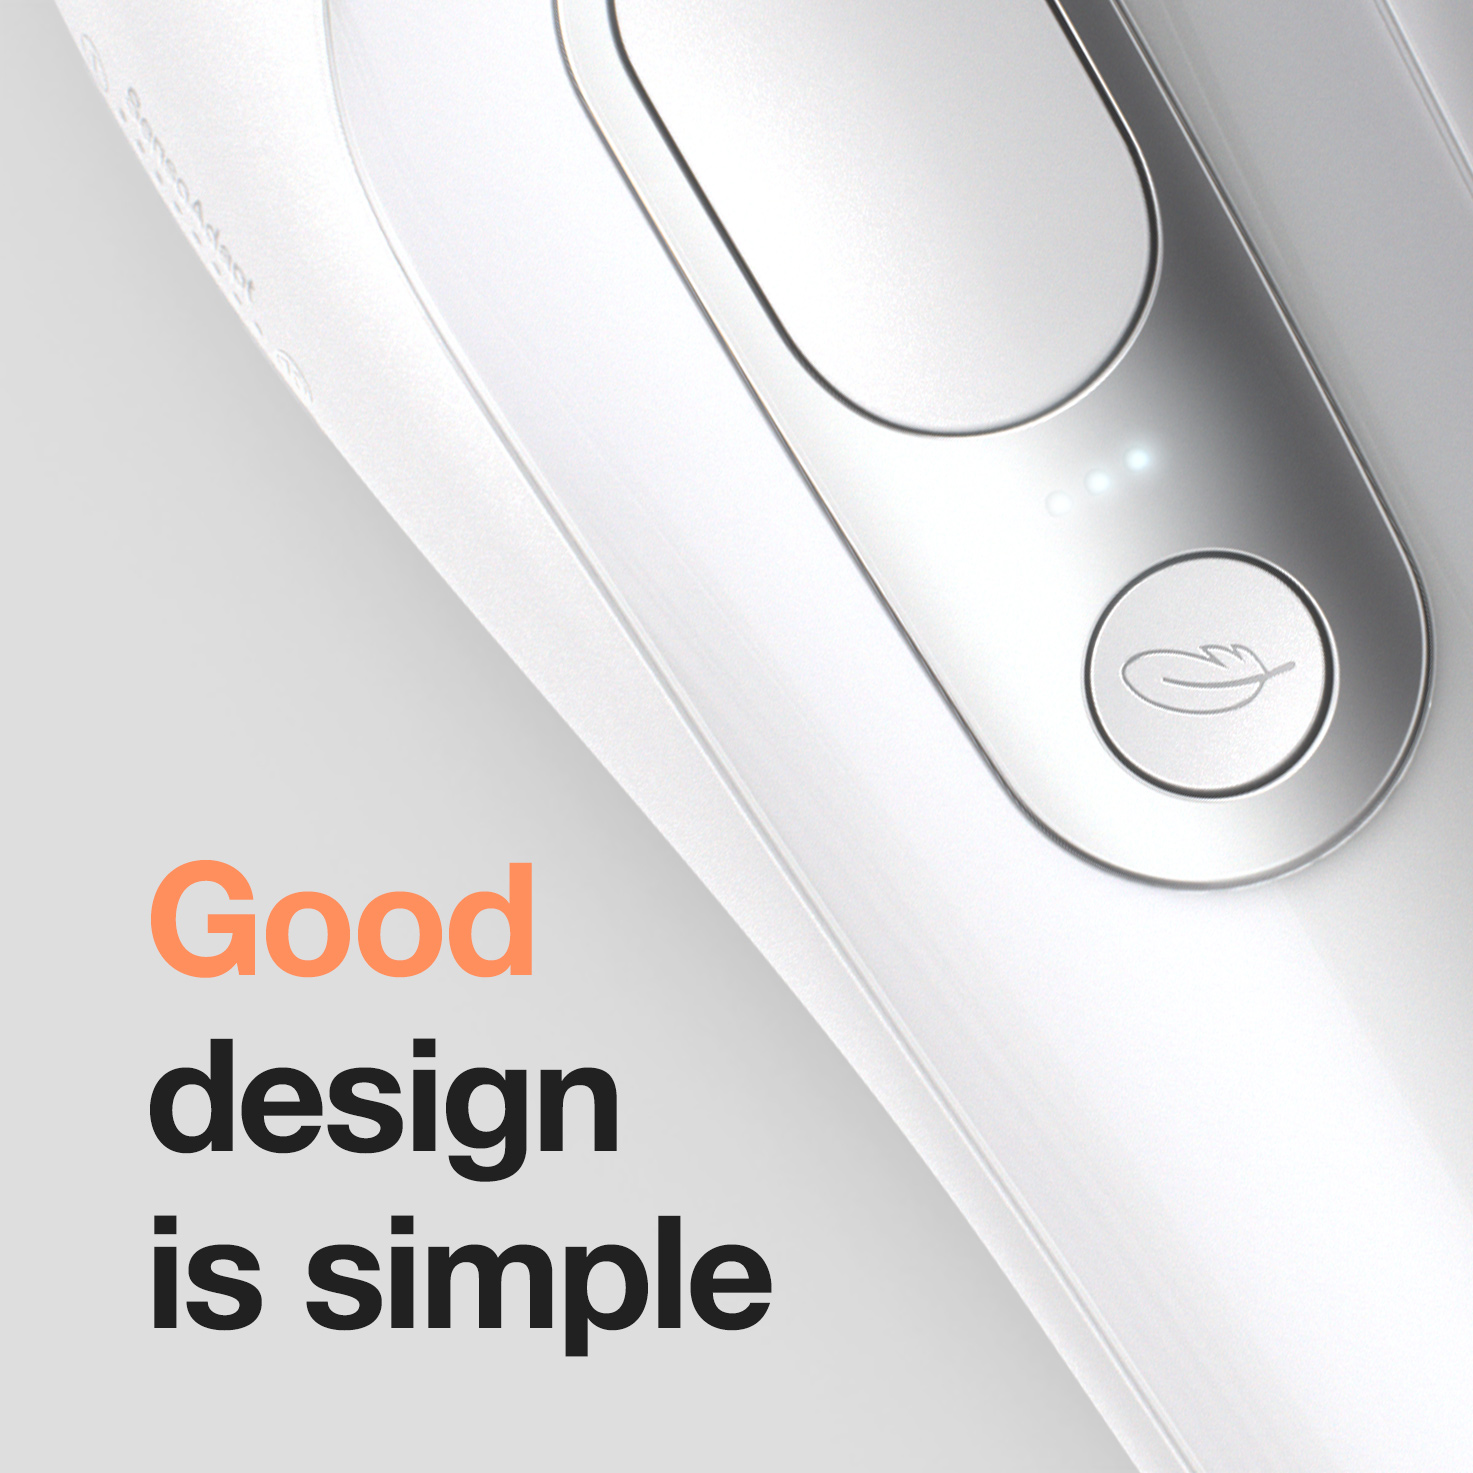 Good design is simple